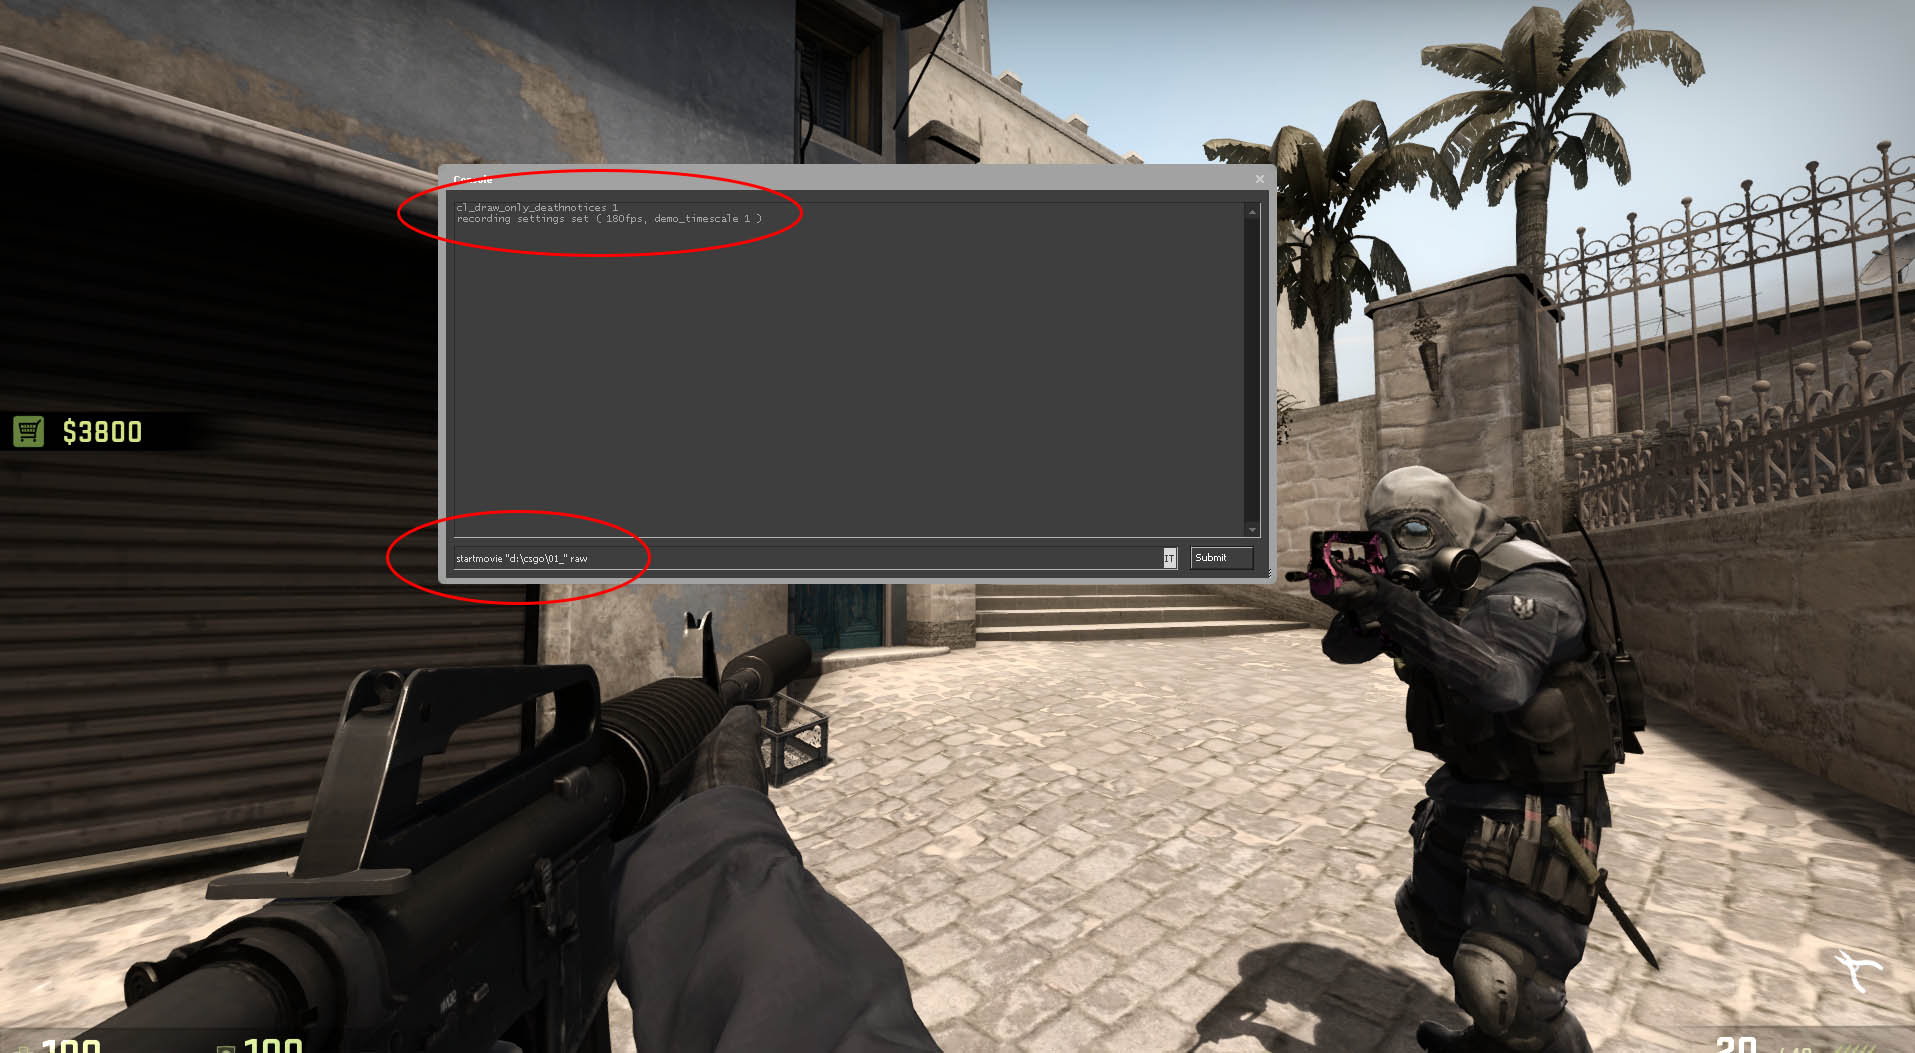 how to clear console csgo